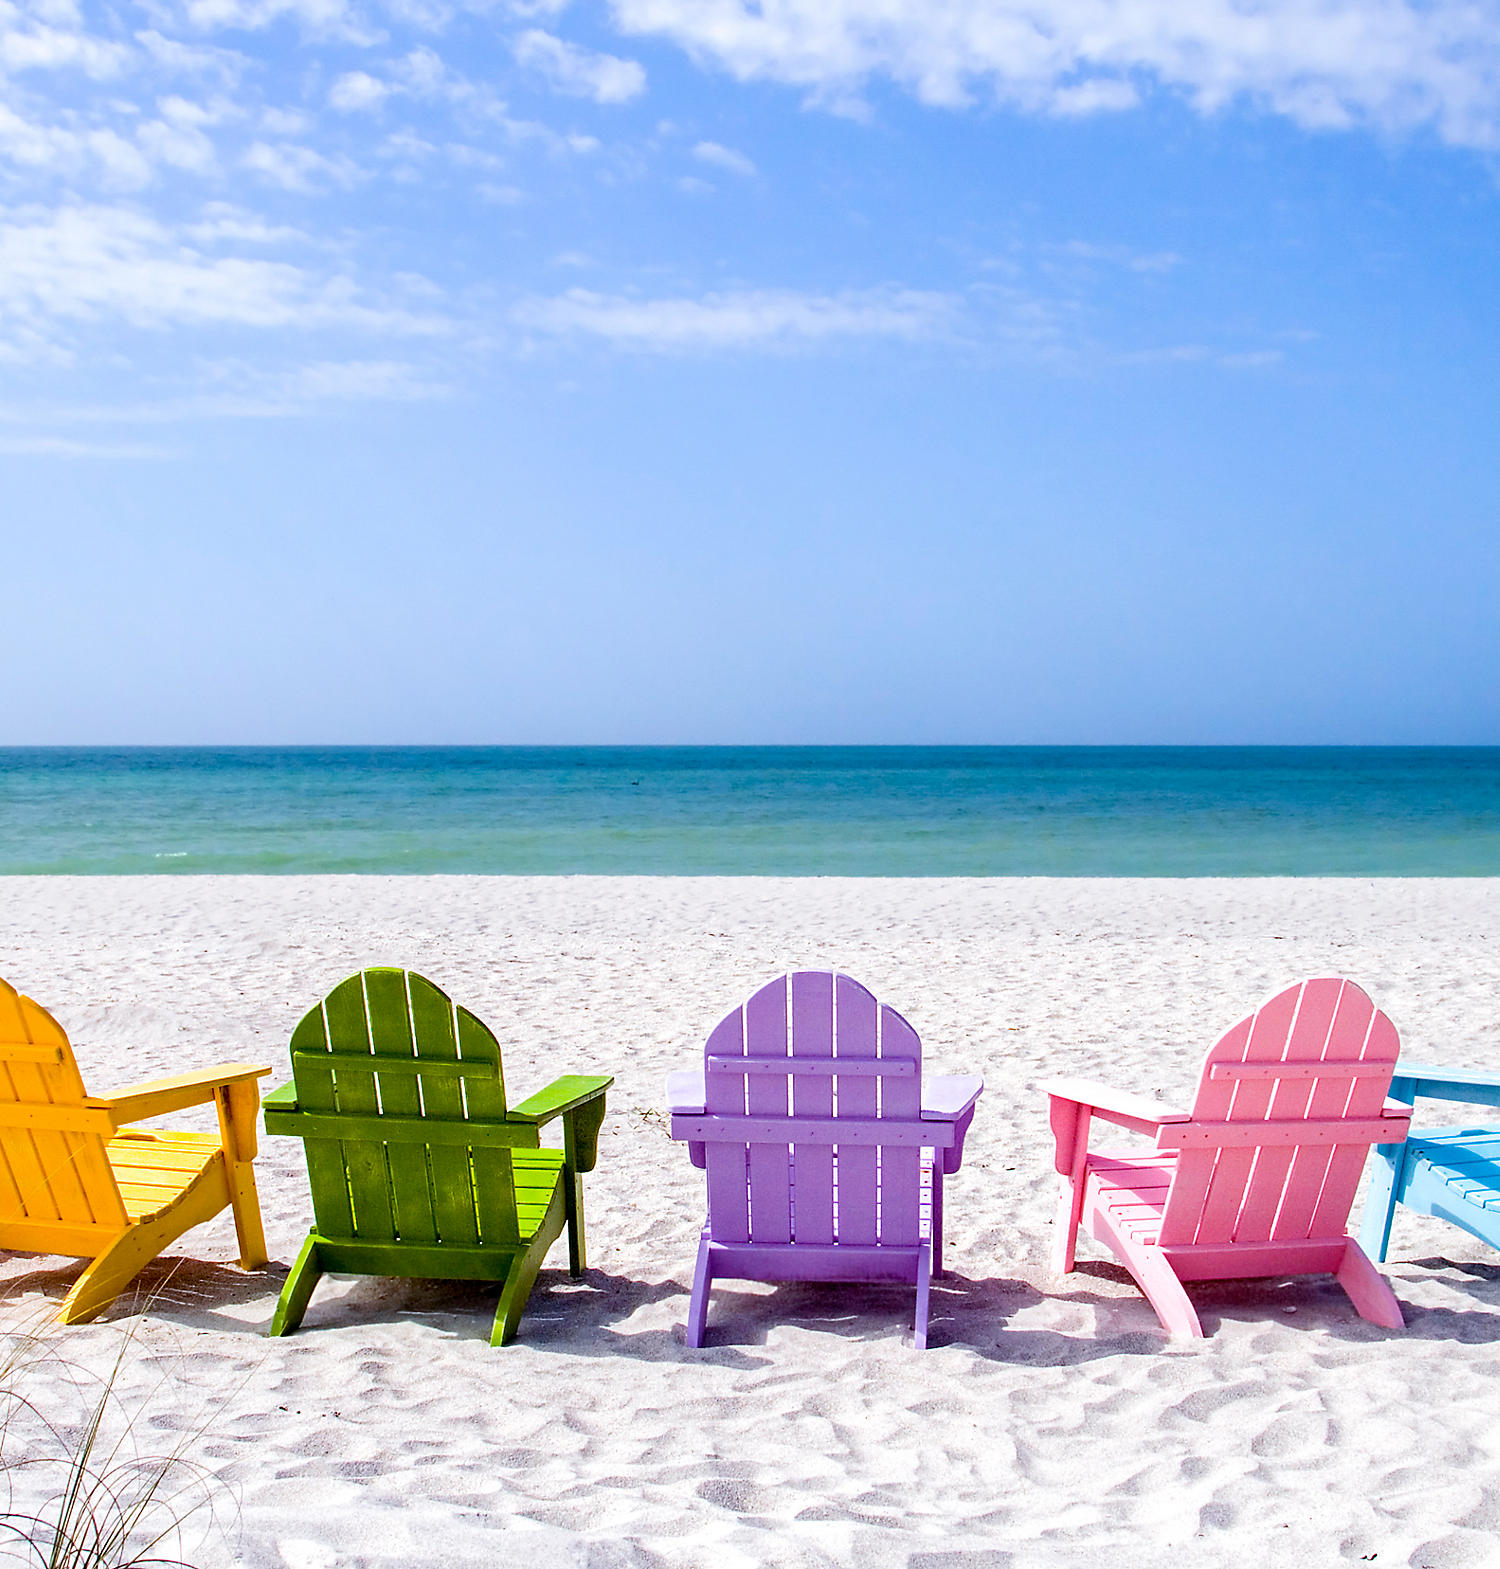 Southwest Florida Coast - Beach with chairs overlooking Gulf